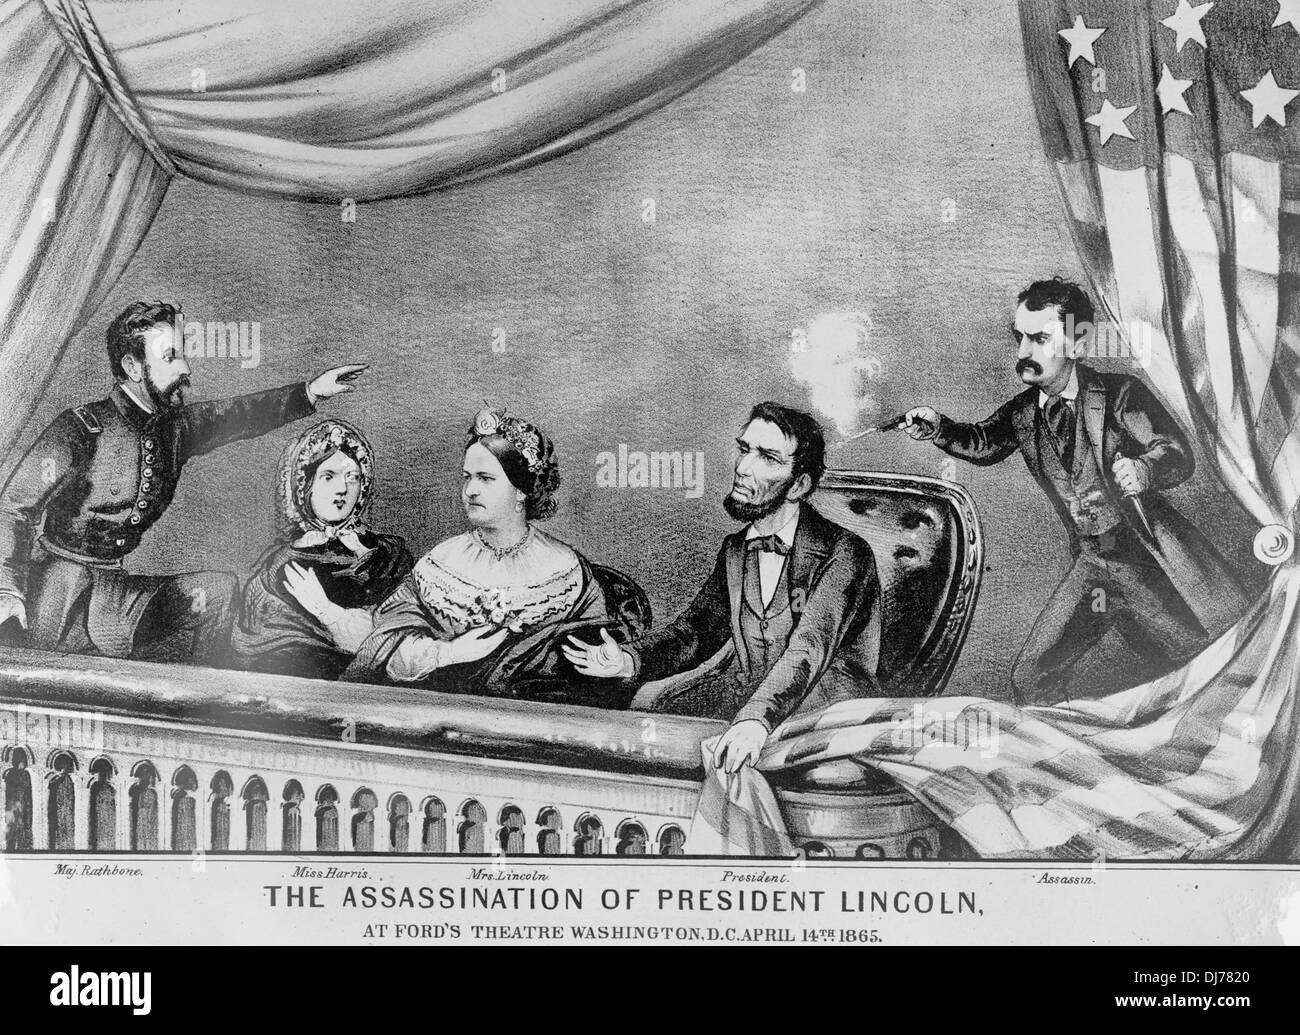 account of the assassination of president abraham lincoln I taught american history for 28 years and was particularly interested in abraham lincoln's assassination for 24 years my students did a mock trial simulating the real one that followed the assassination in 1865.